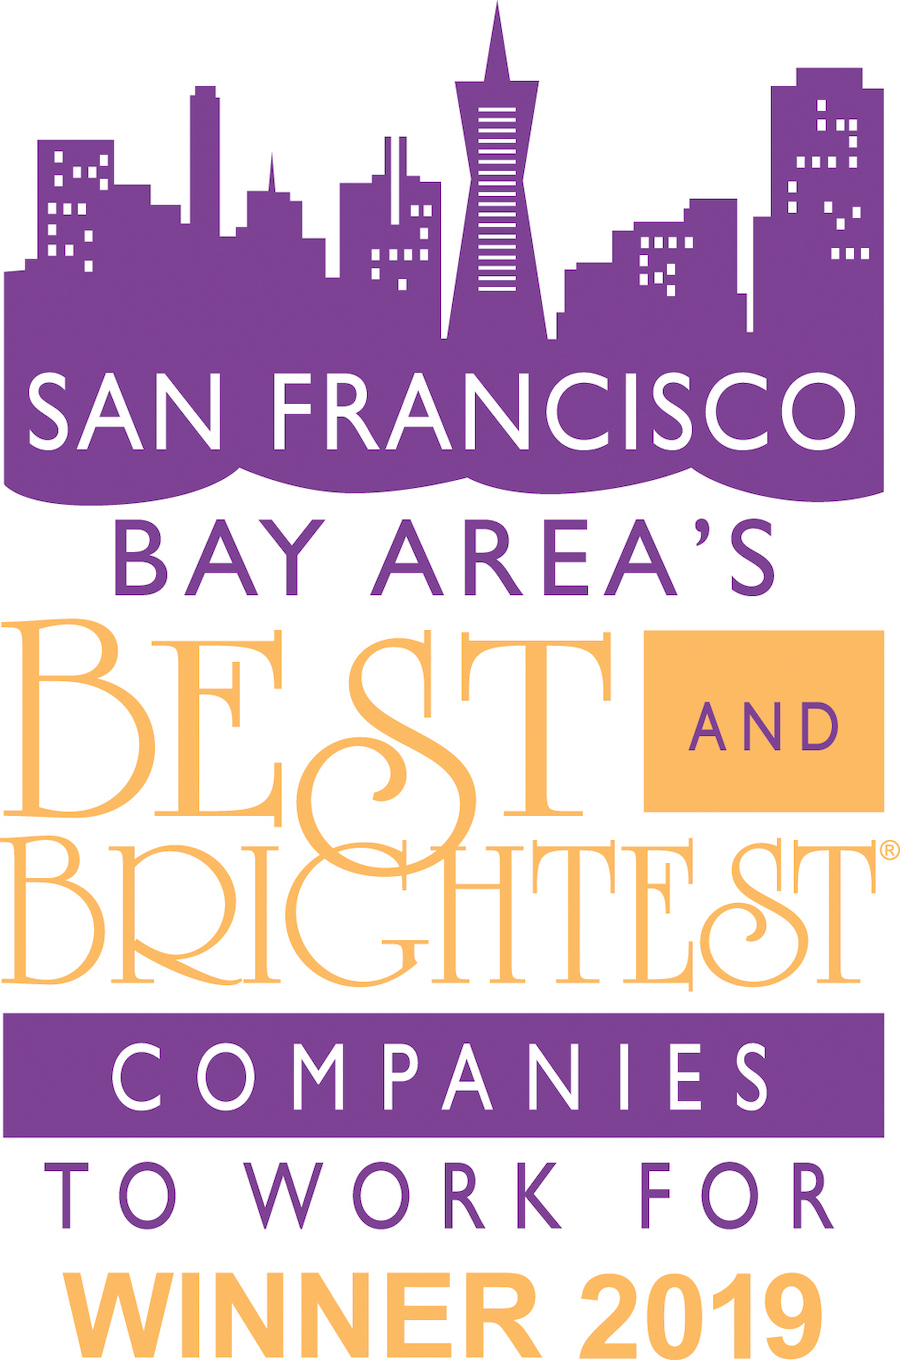 San Francisco Best and Brightest Companies to Work for 2019 Award